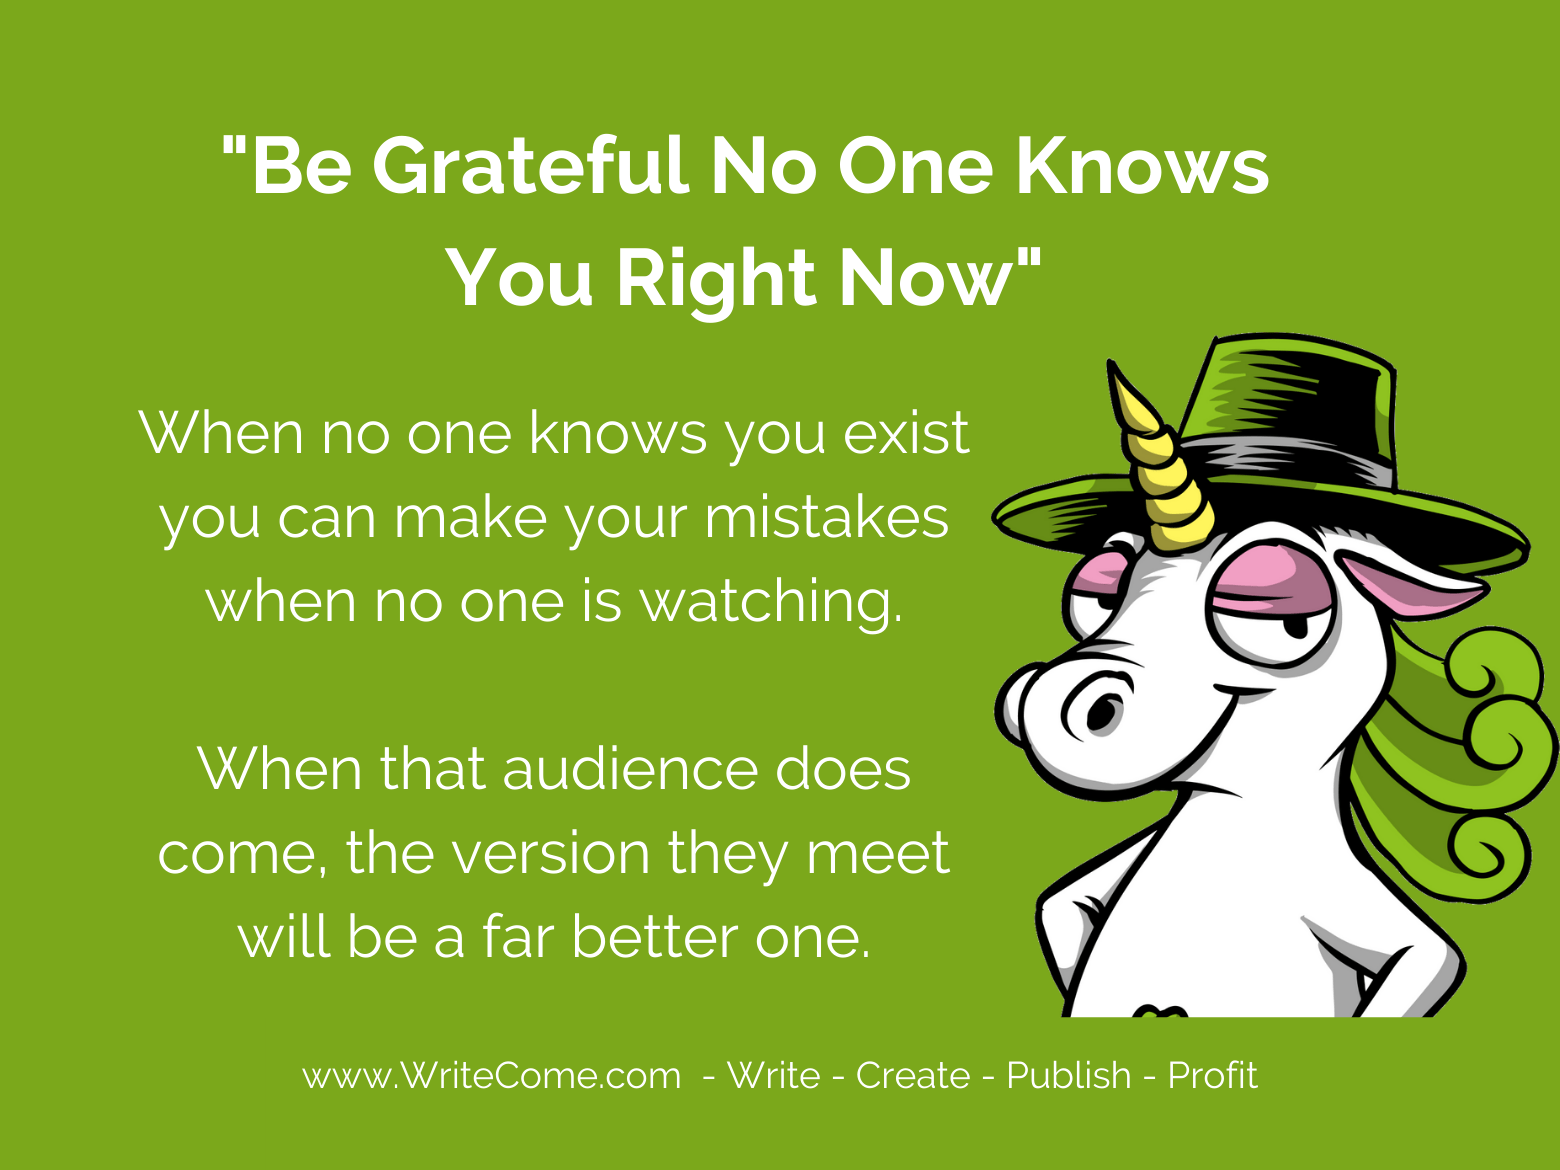 Be Grateful That No One Knows You...